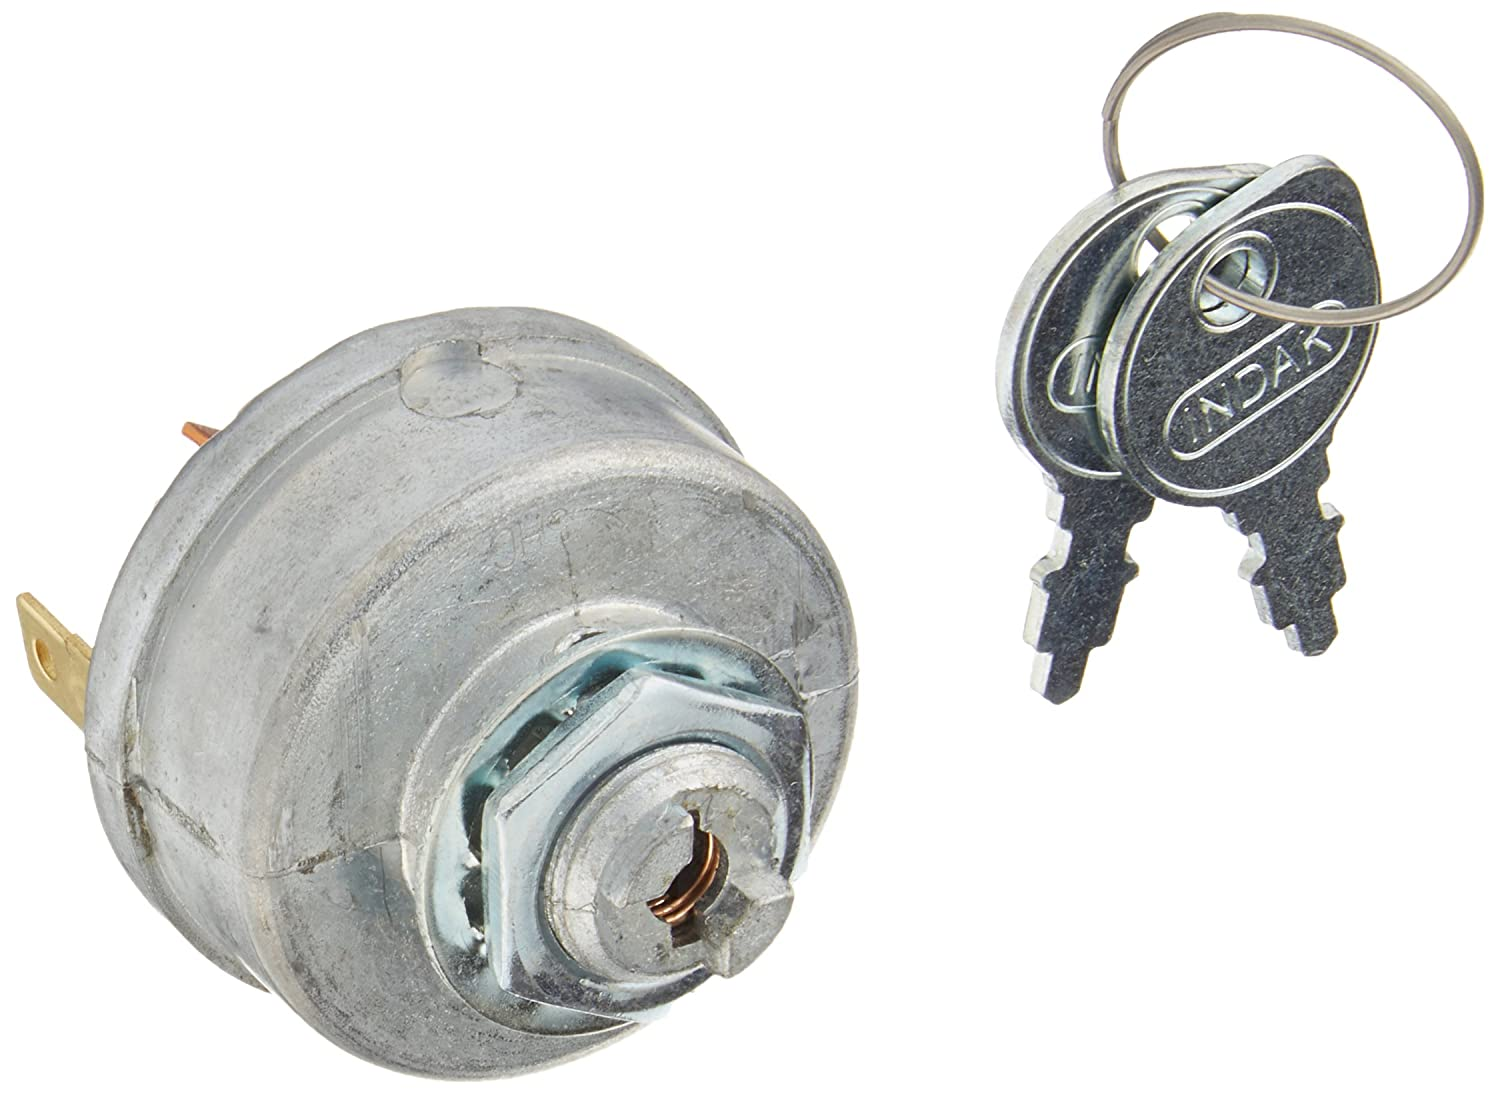 Stens 430 662 Starter Switch Replaces Kohler 25 099 04 Toro Wheel Horse 312 Wiring Diagram S 103991 02 Lawn And Garden Tool Accessories Outdoor